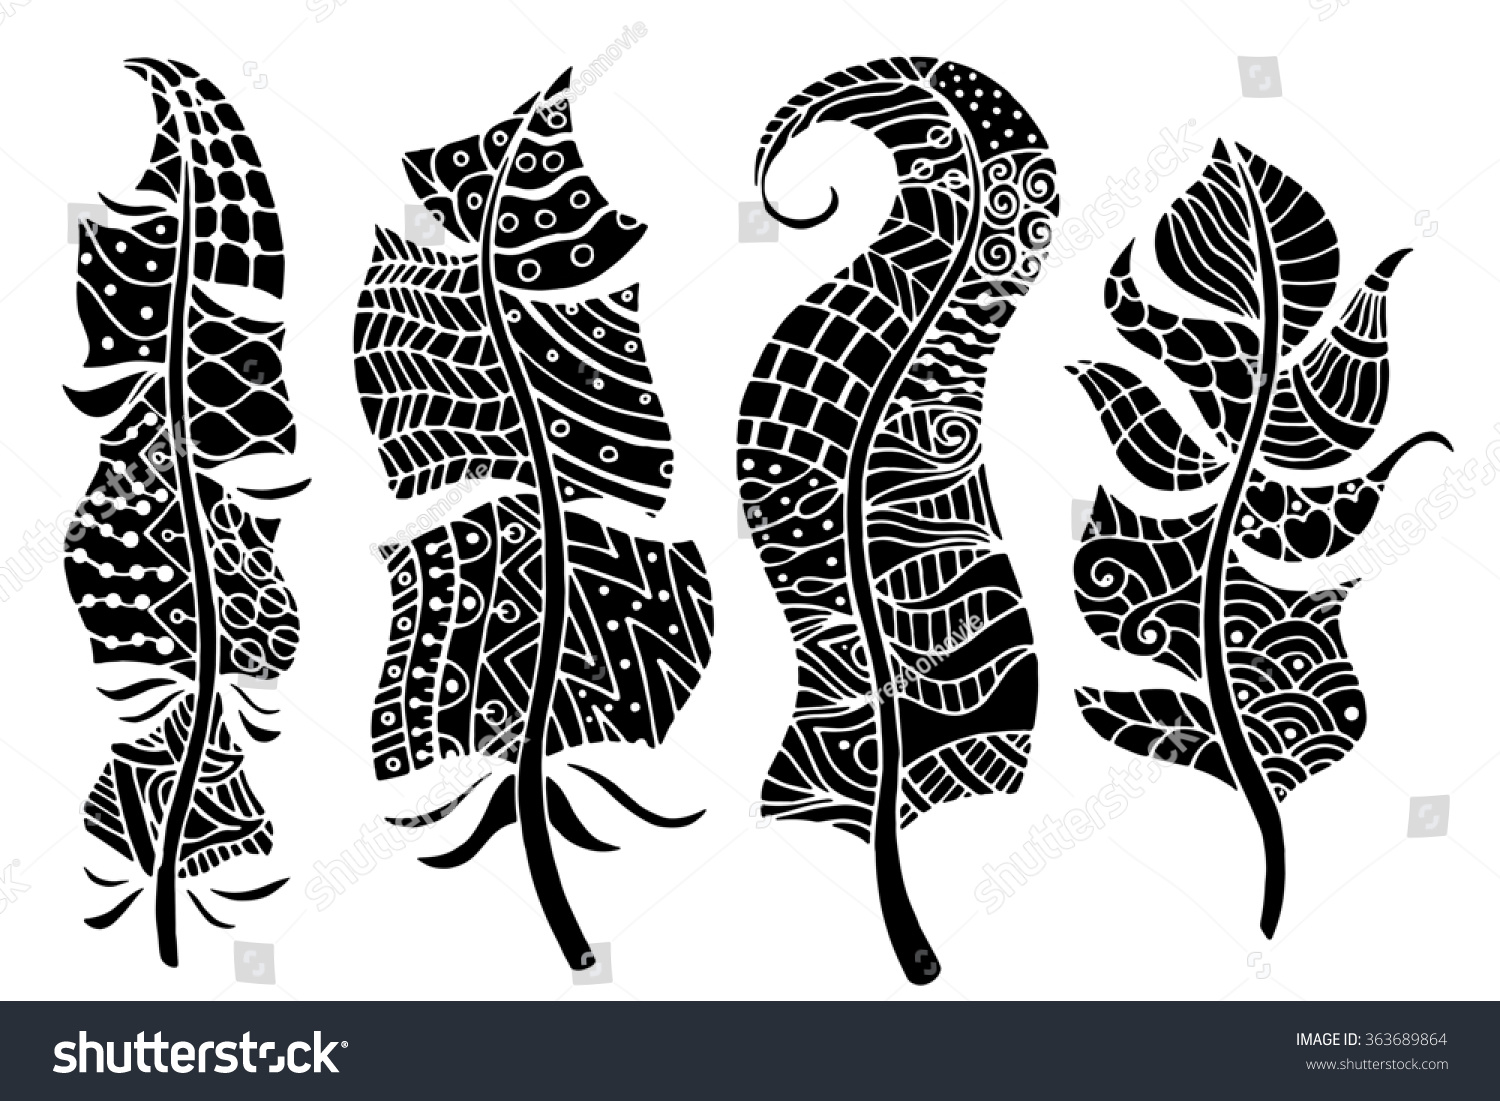 Line Art Feather : Hand drawn stylized feathers art collection stock illustration